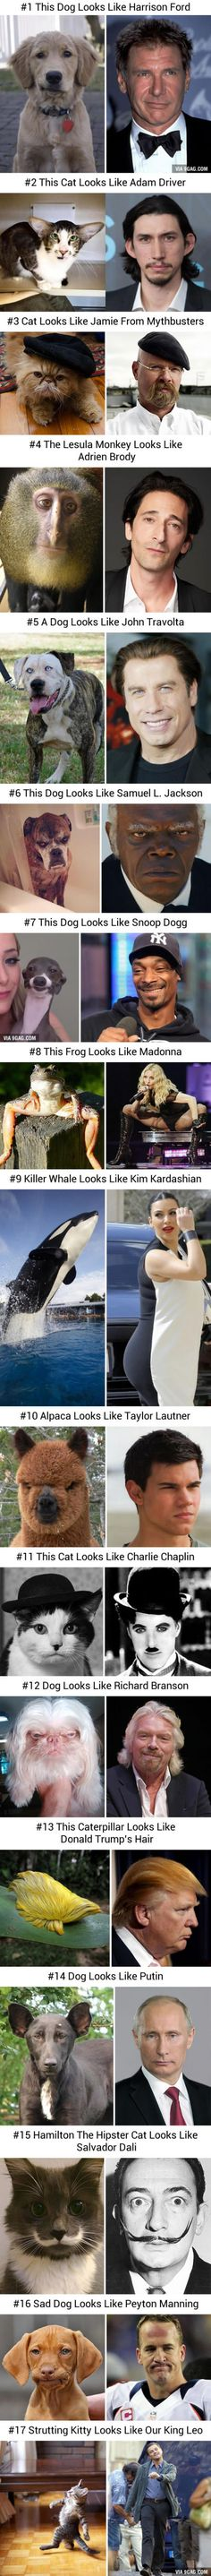 17 Animals That Look Like Celebrities And Famous People Be sure to check out http://TheThrillSociety.com